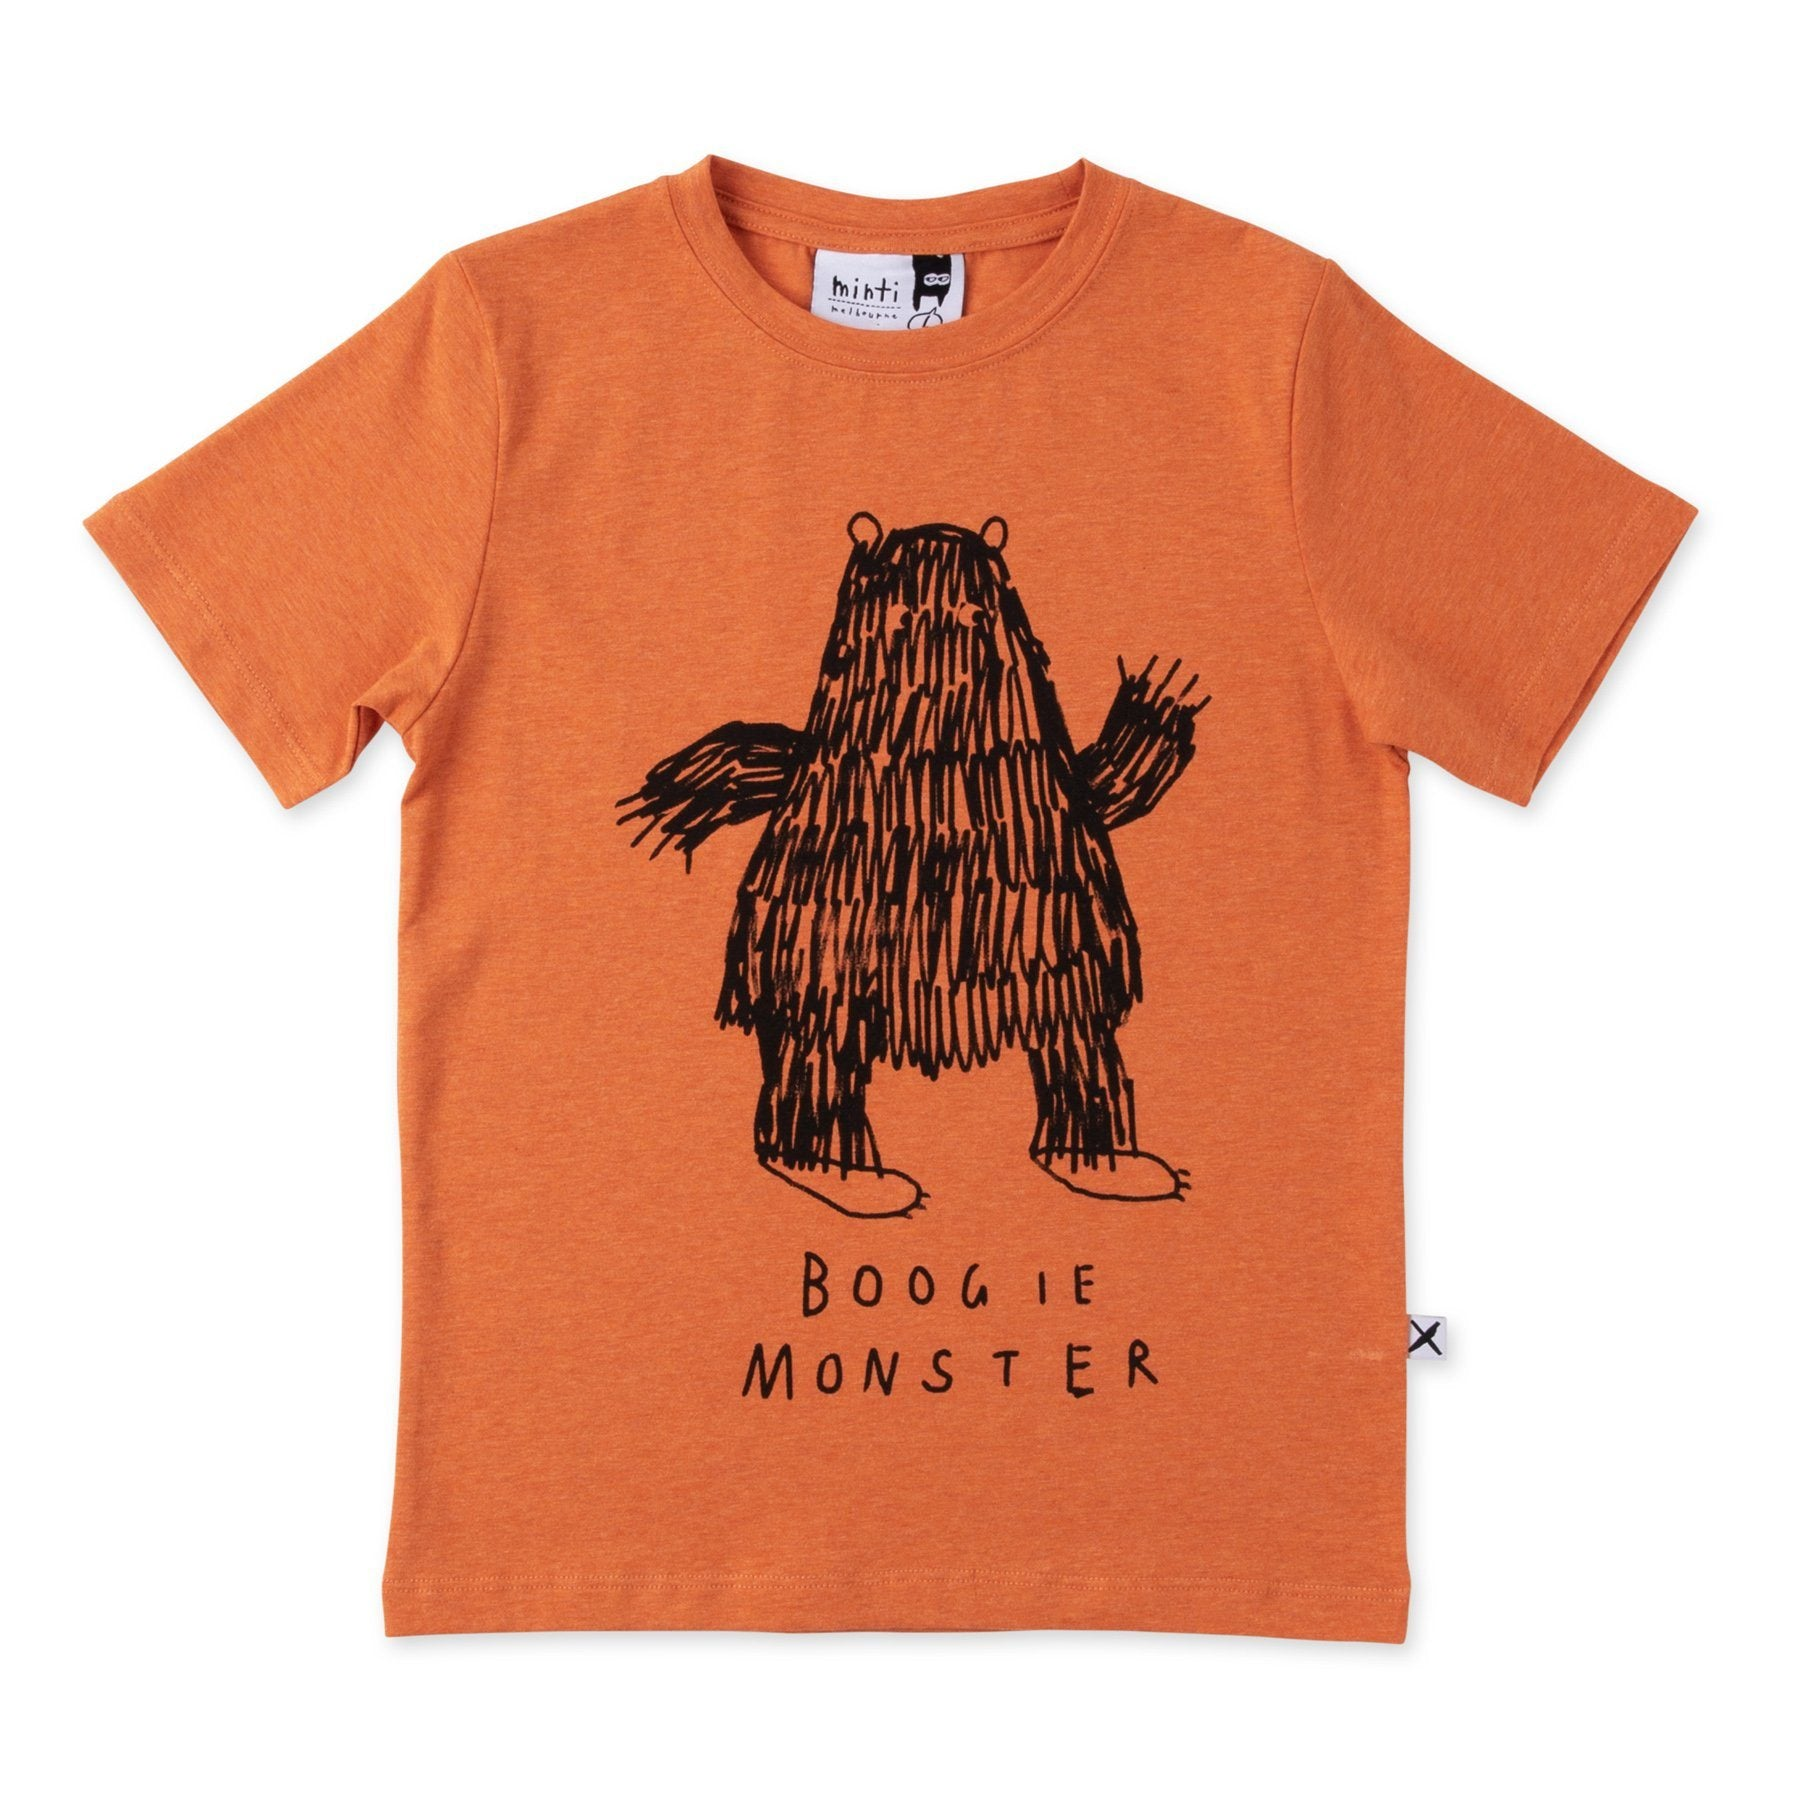 Boogie Monster Tee